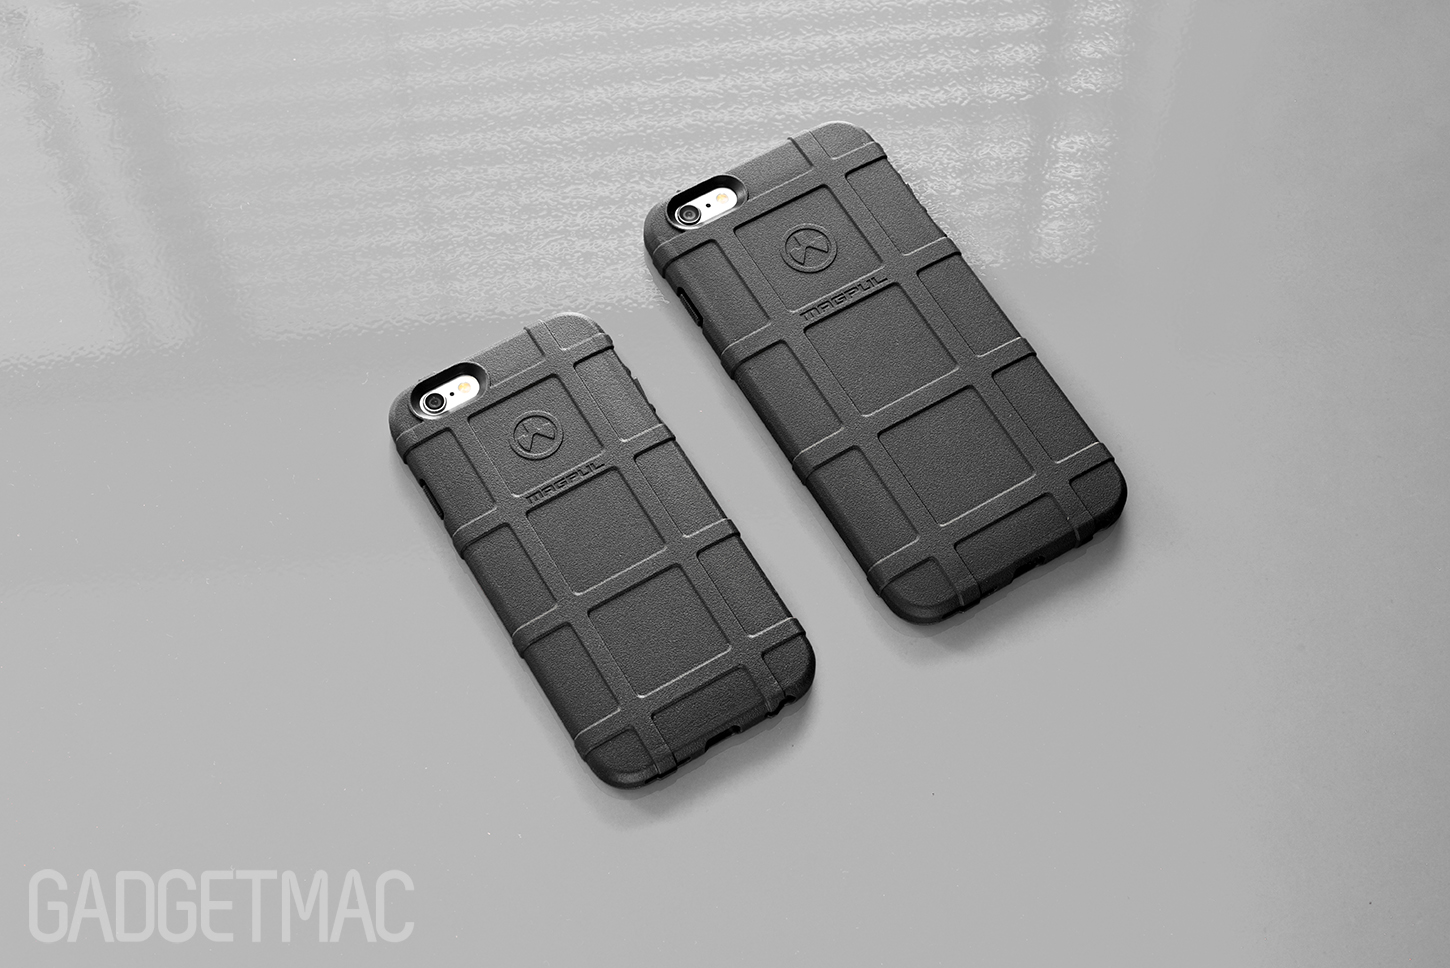 magpul_field_case_iphone_6_iphone_6_plus.jpg